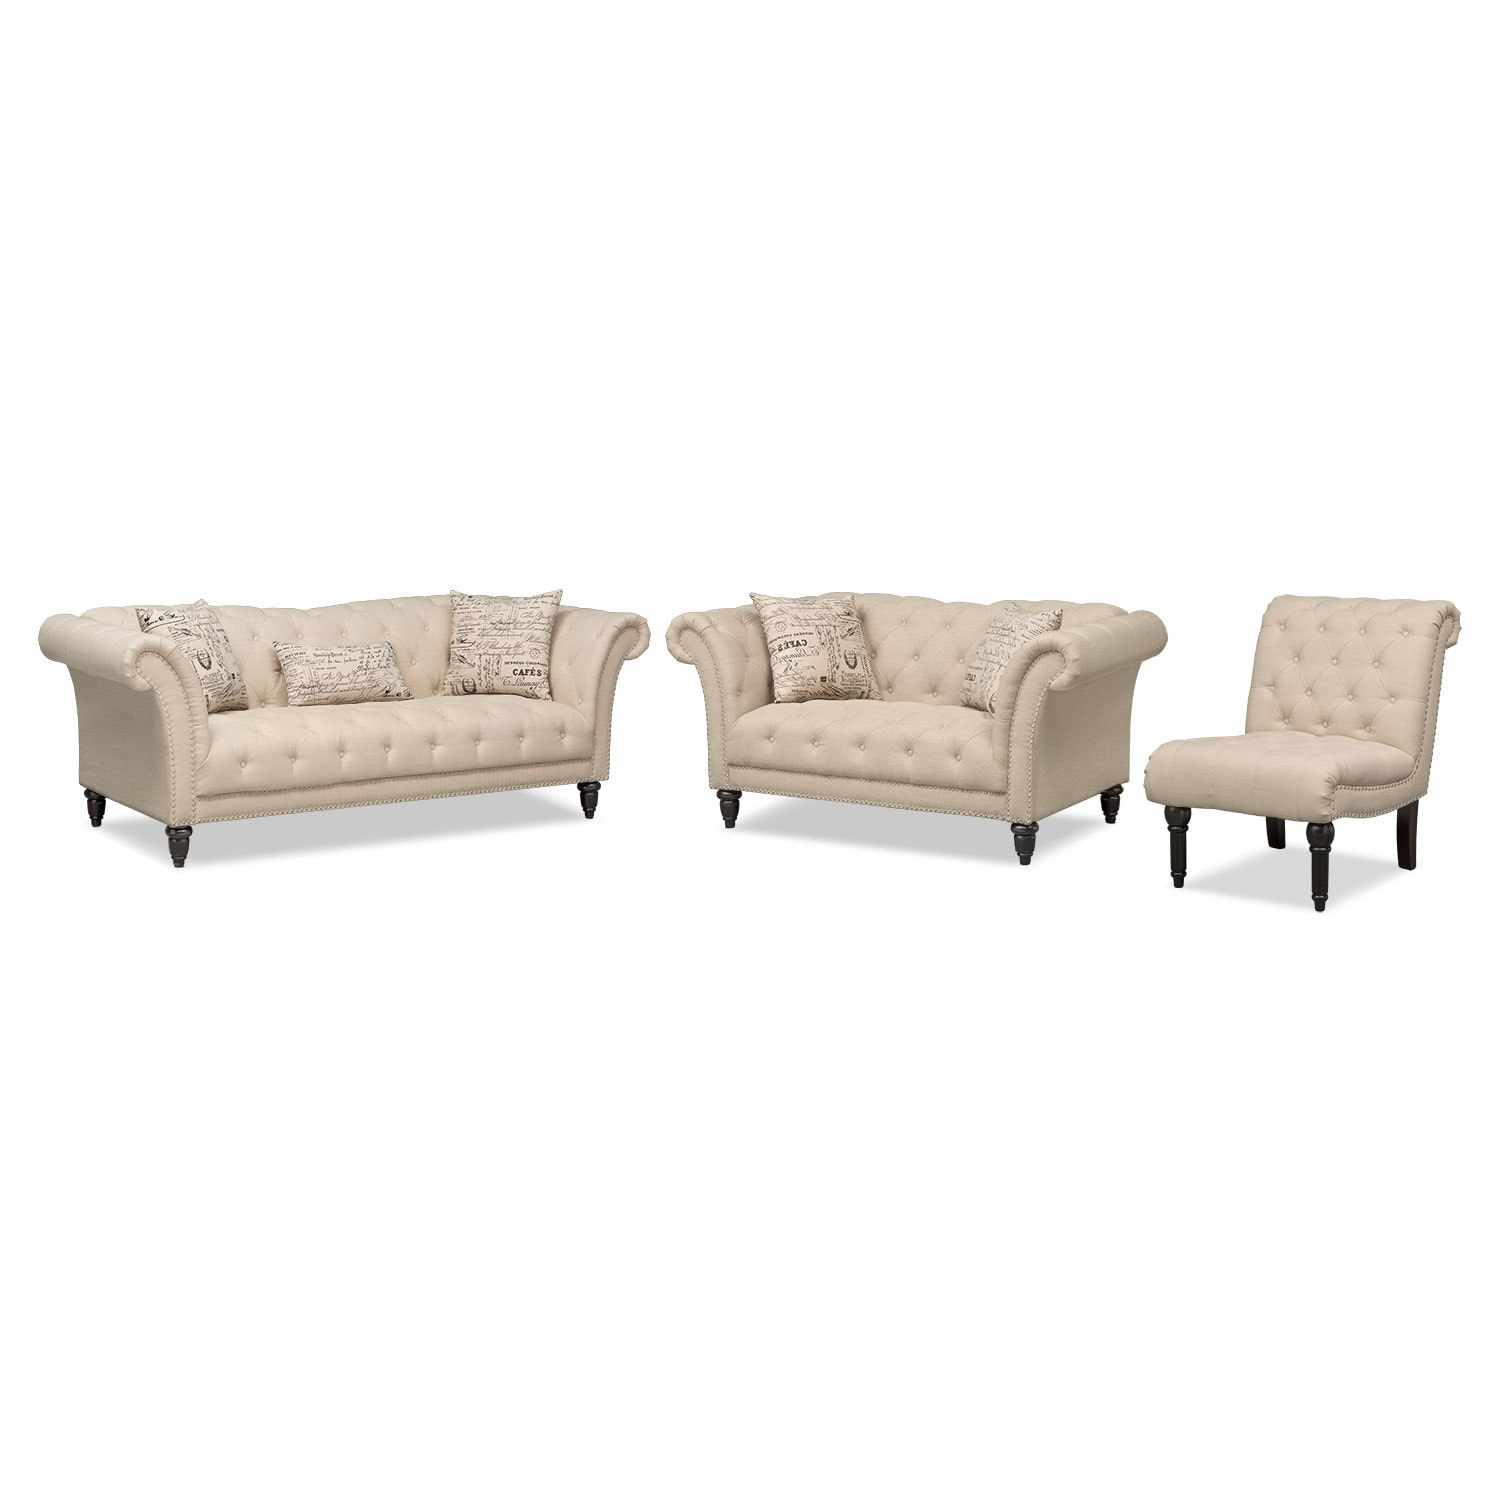 Living Room Furniture - Marisol Sofa, Loveseat and Armless Chair Set - Beige